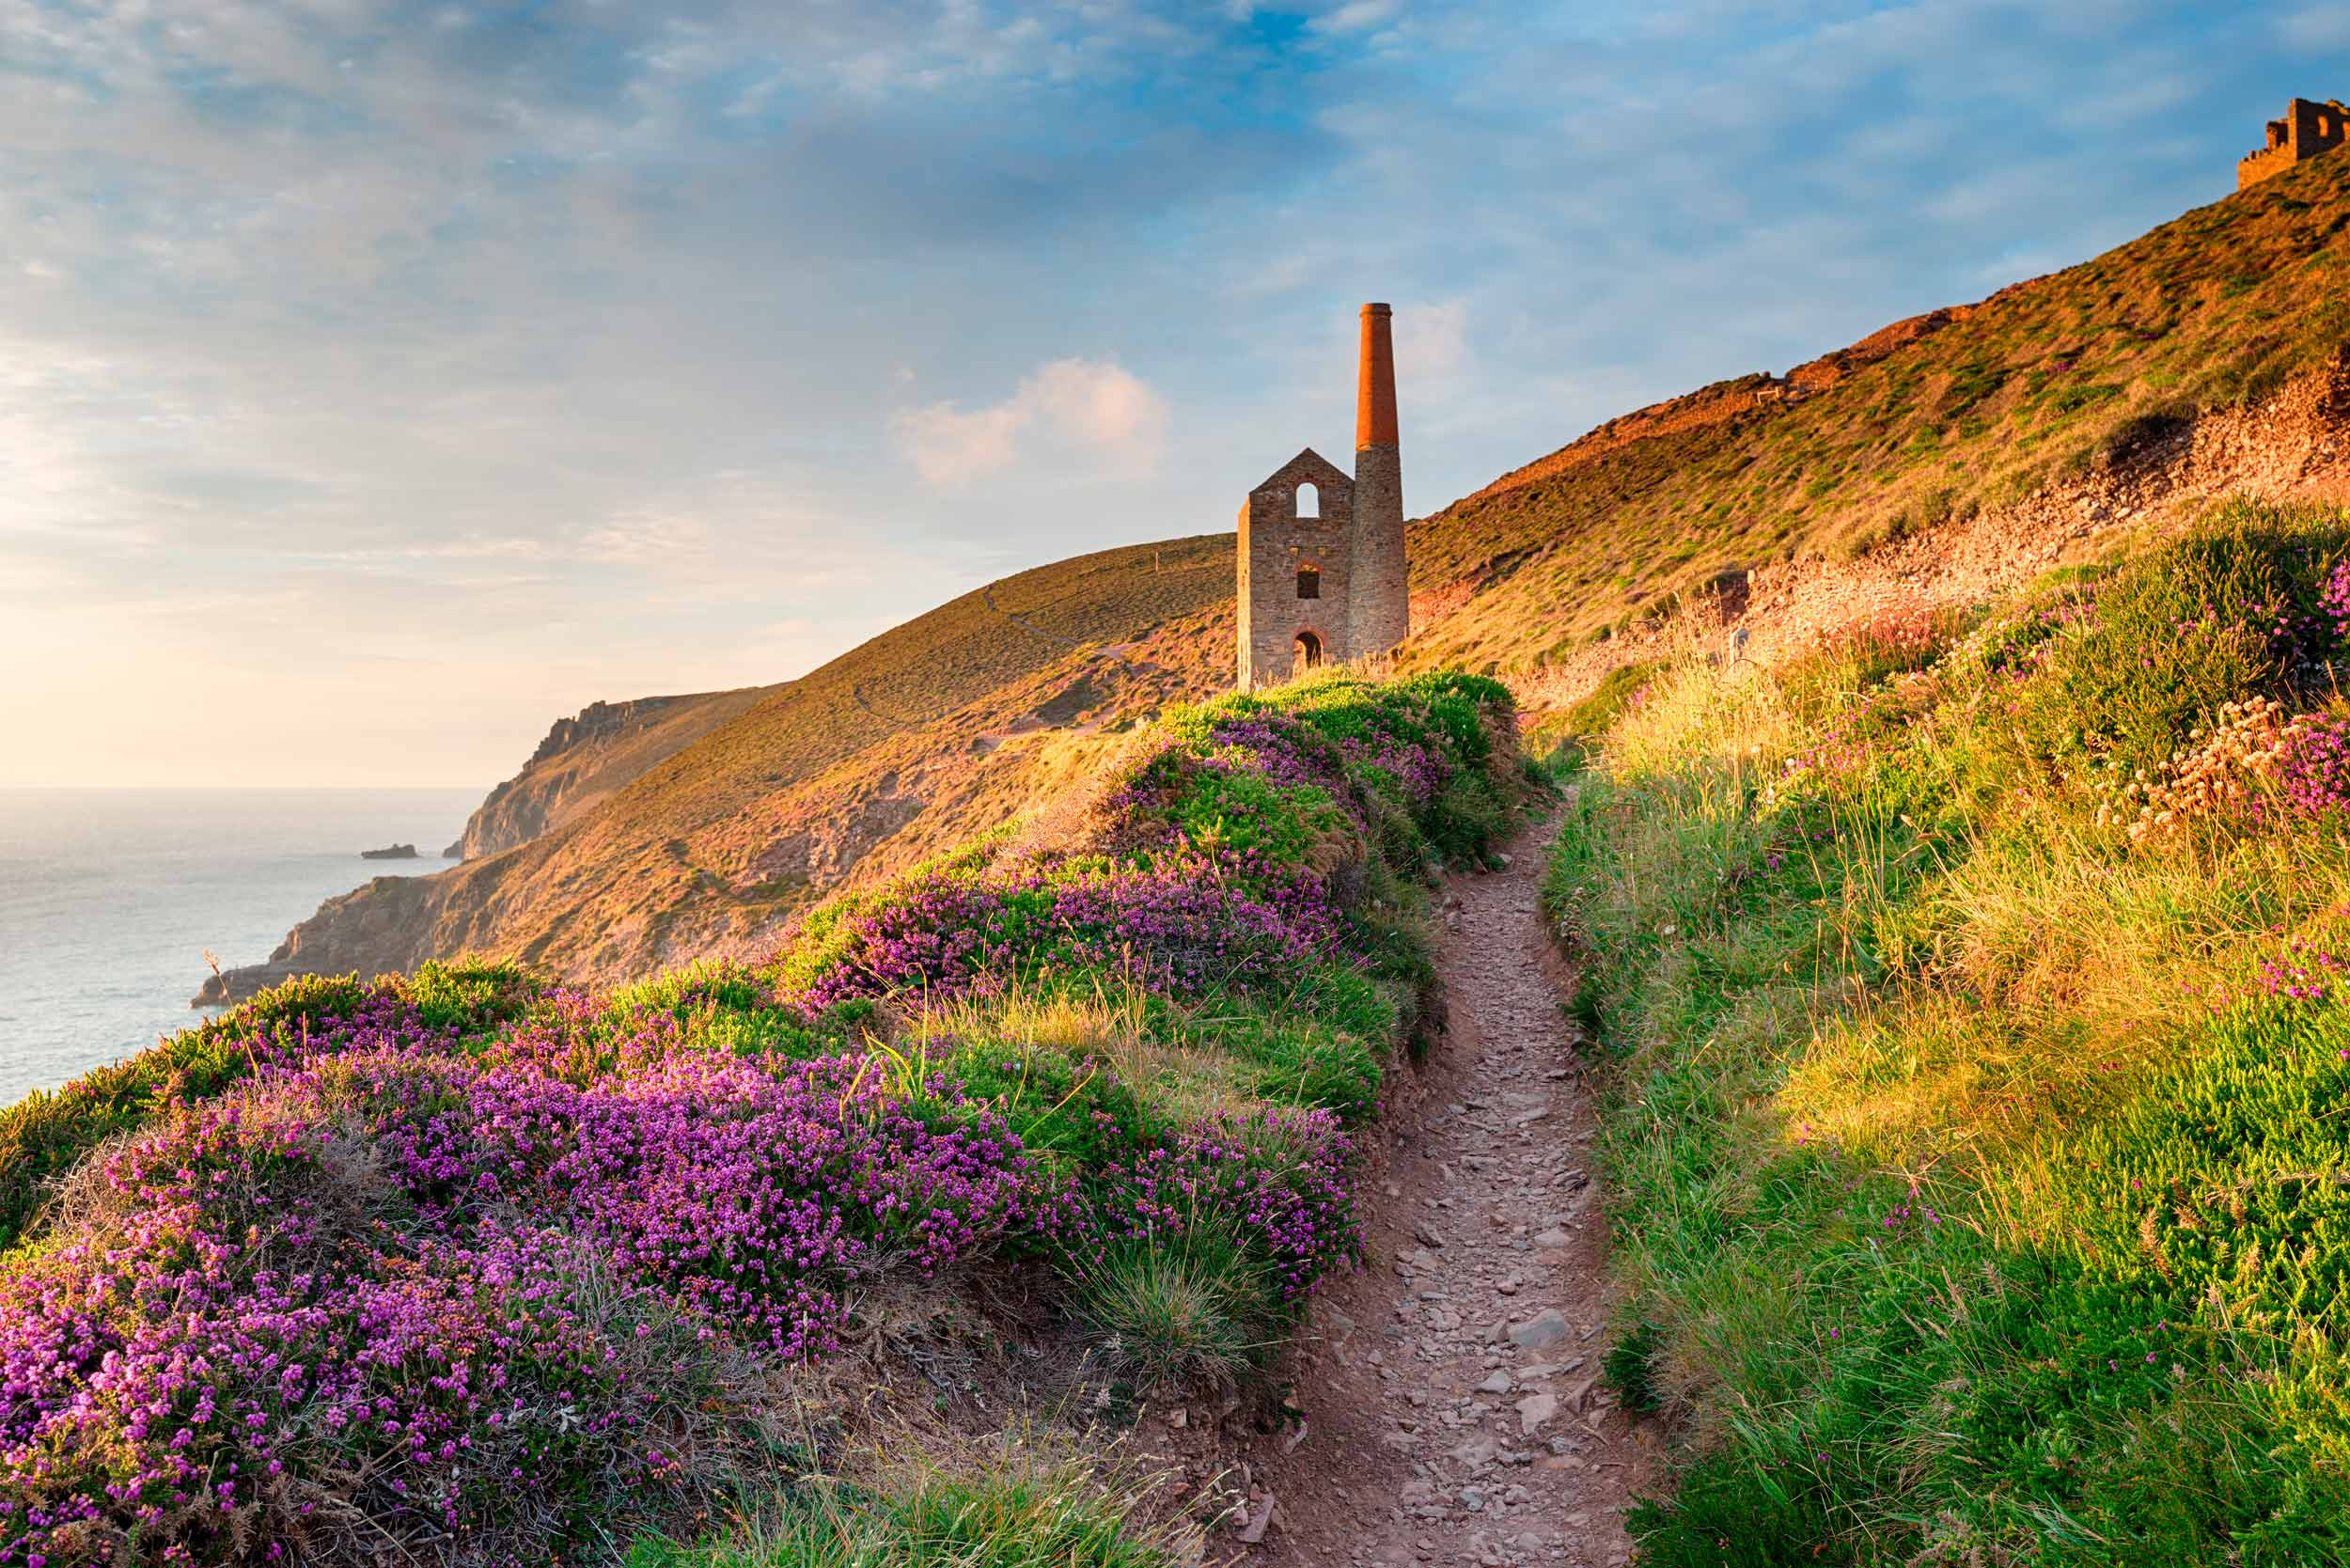 The South West Coast Path at Wheal Coates near St Agnes, Cornwall  (Helen Hotson/Shutterstock)